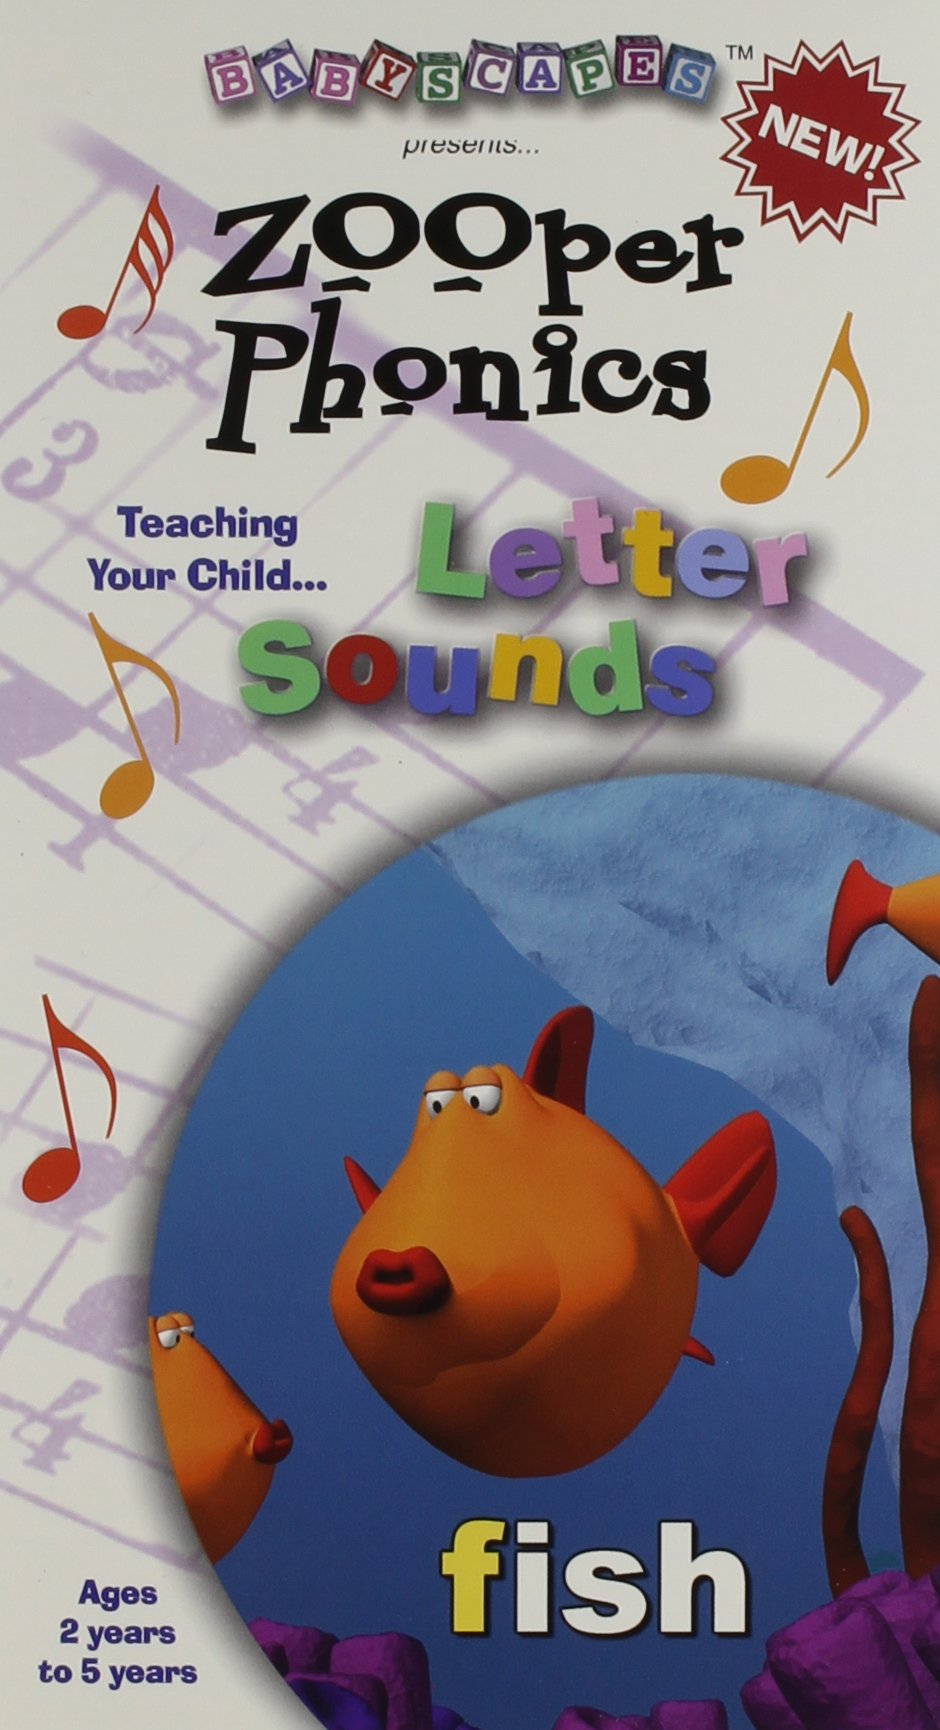 Zooper Phonics: Teaching Your Child Letter Sounds